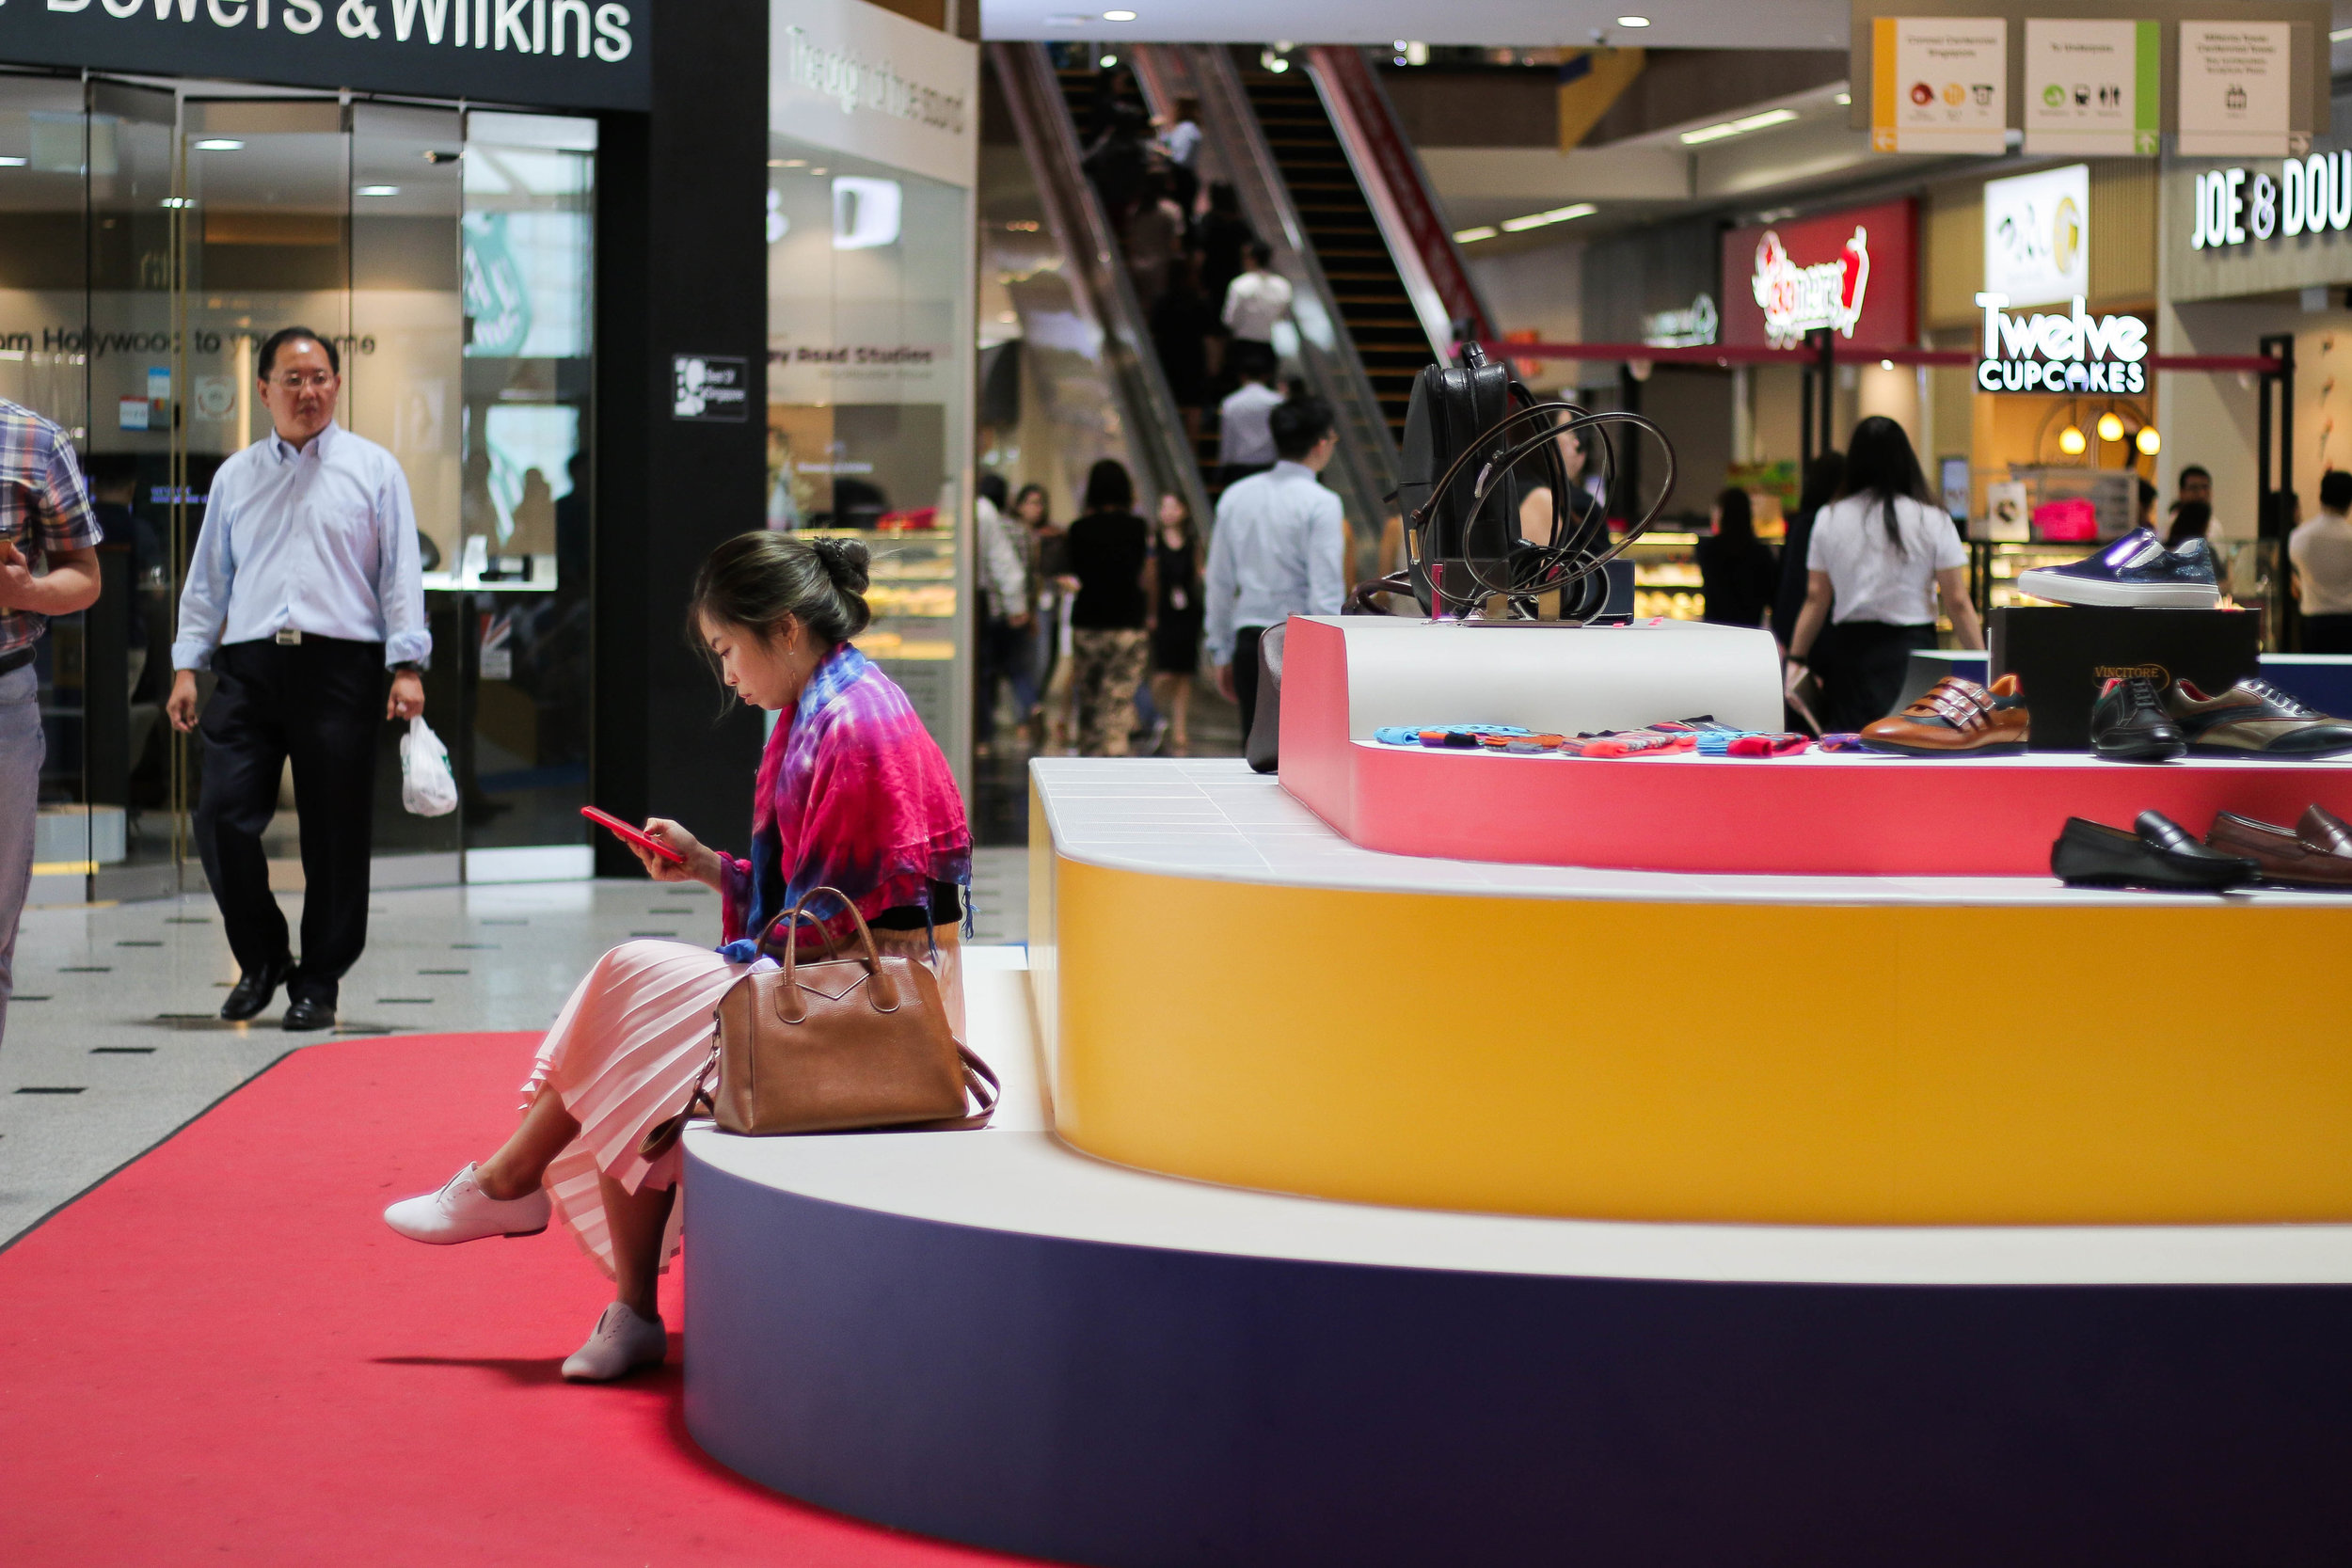 outeredit - millenia walk design play space - sitting